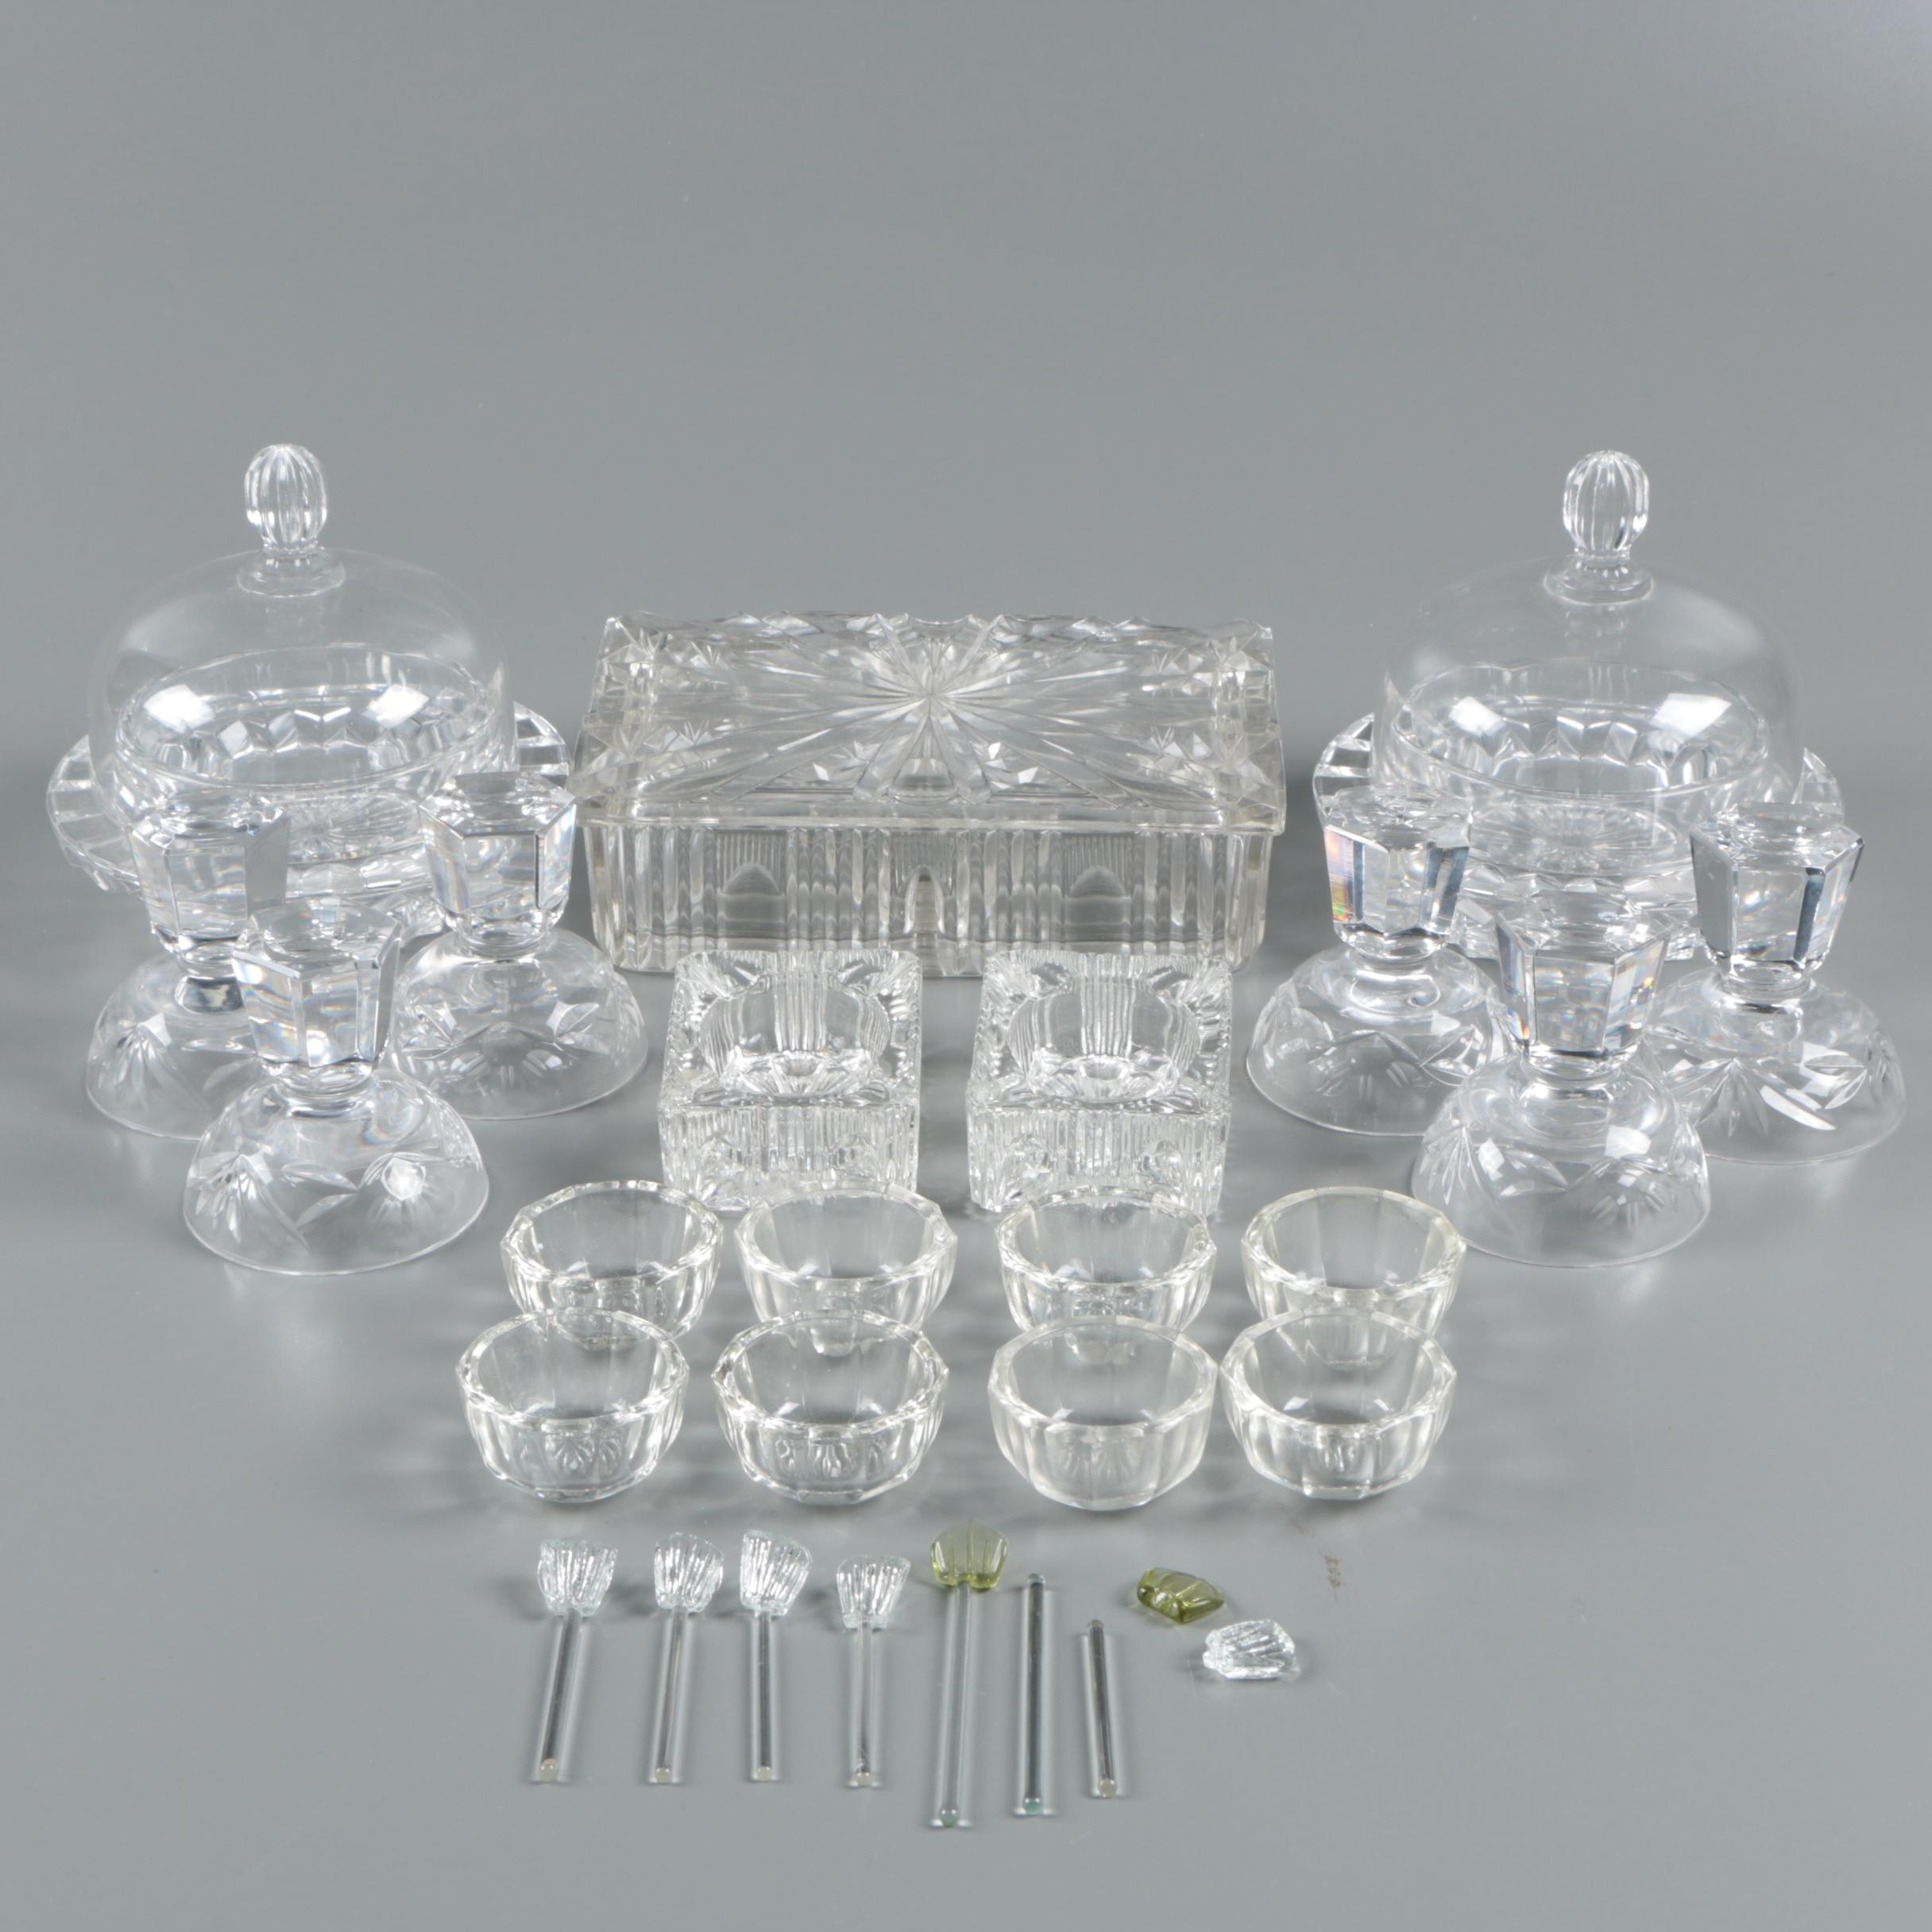 Princess Gardner Glass Salt Cellar Set with other Crystal and Glass Serveware